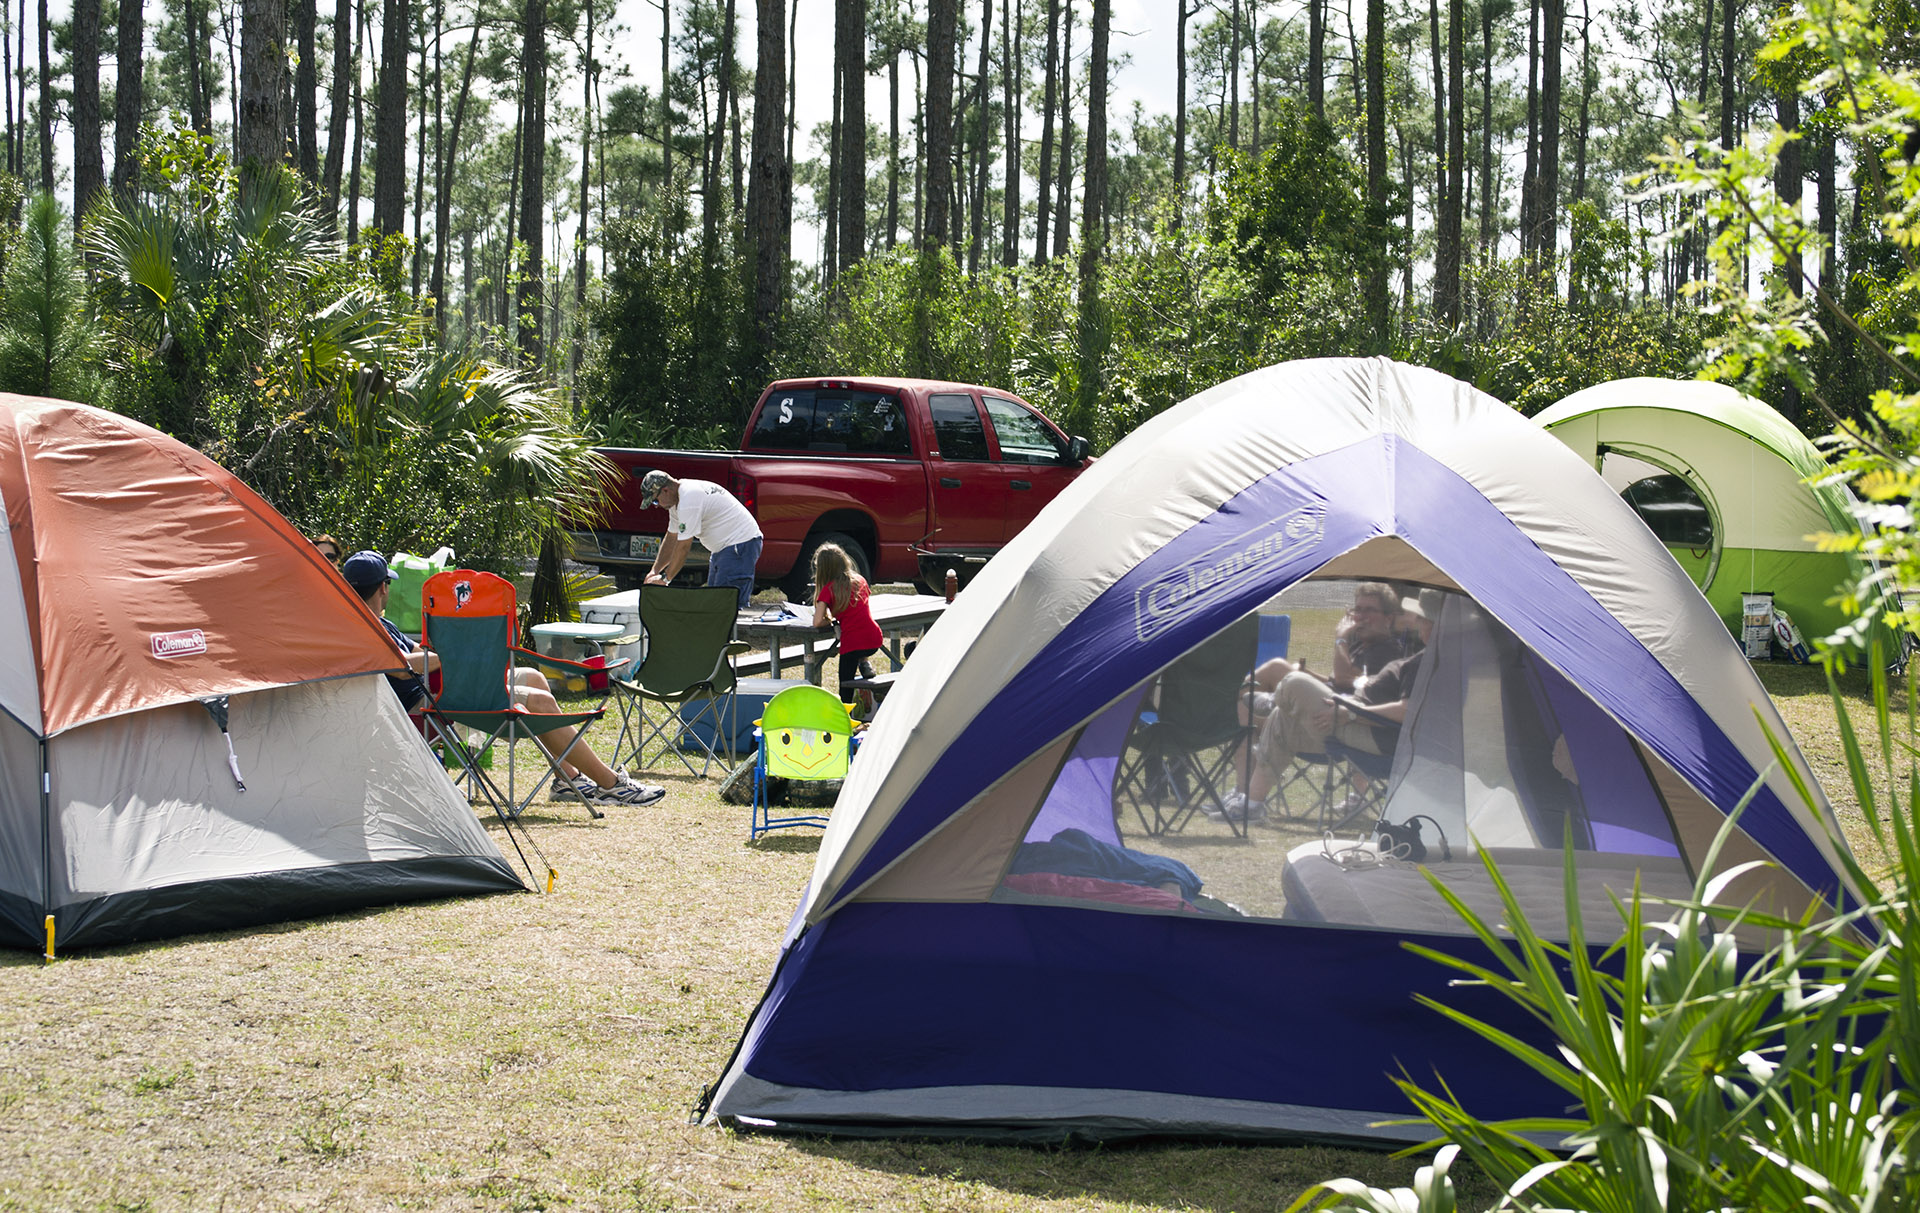 5 of the Highest Rated Florida Campgrounds